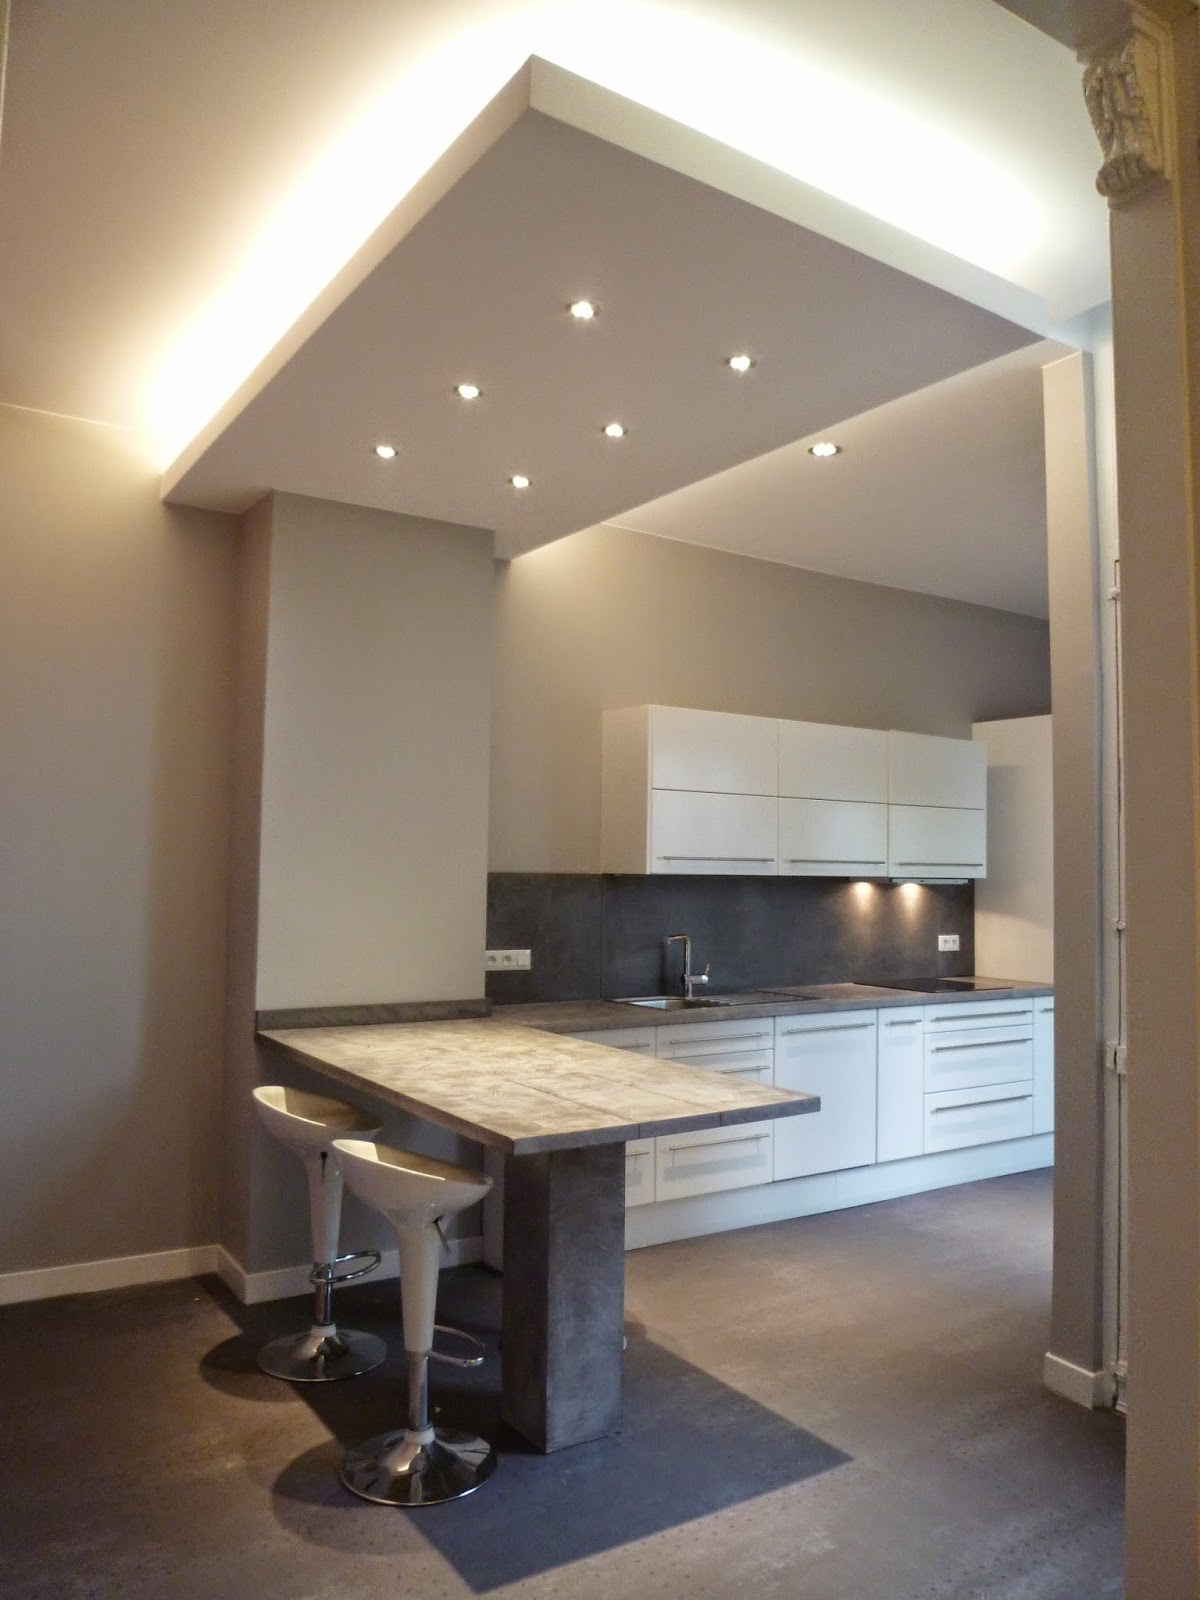 Eclairage Bandeau Led Cuisine Jacques Lenain Architecte Lille: Renovation D'une Maison A